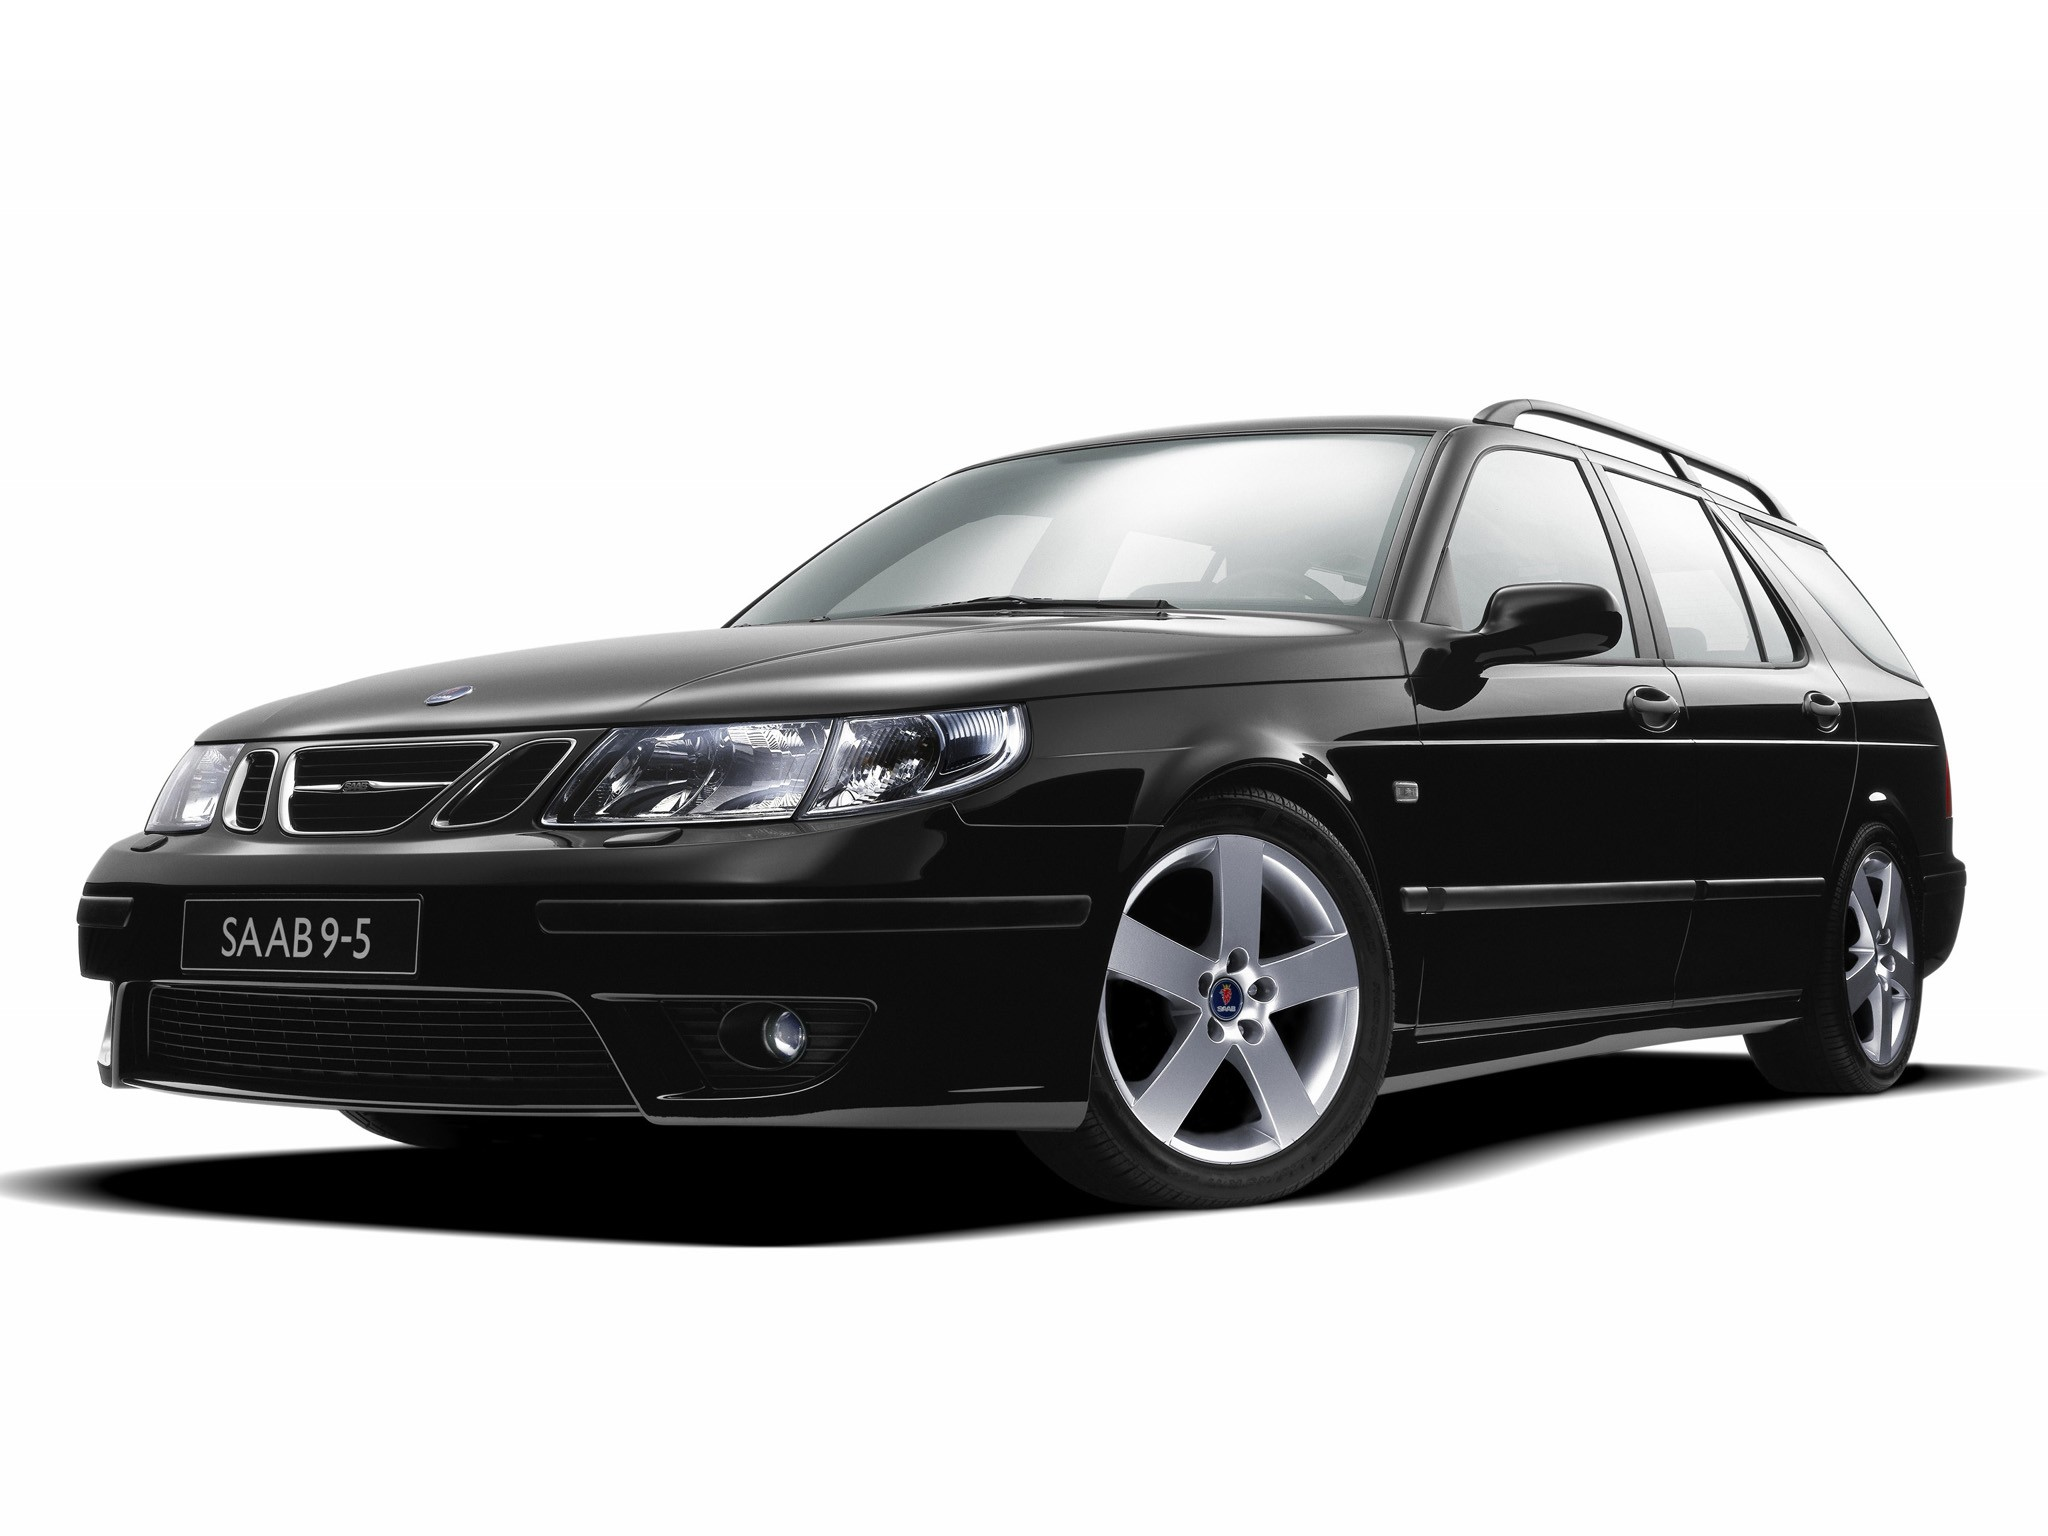 saab 9 5 sportcombi specs photos 2001 2002 2003. Black Bedroom Furniture Sets. Home Design Ideas